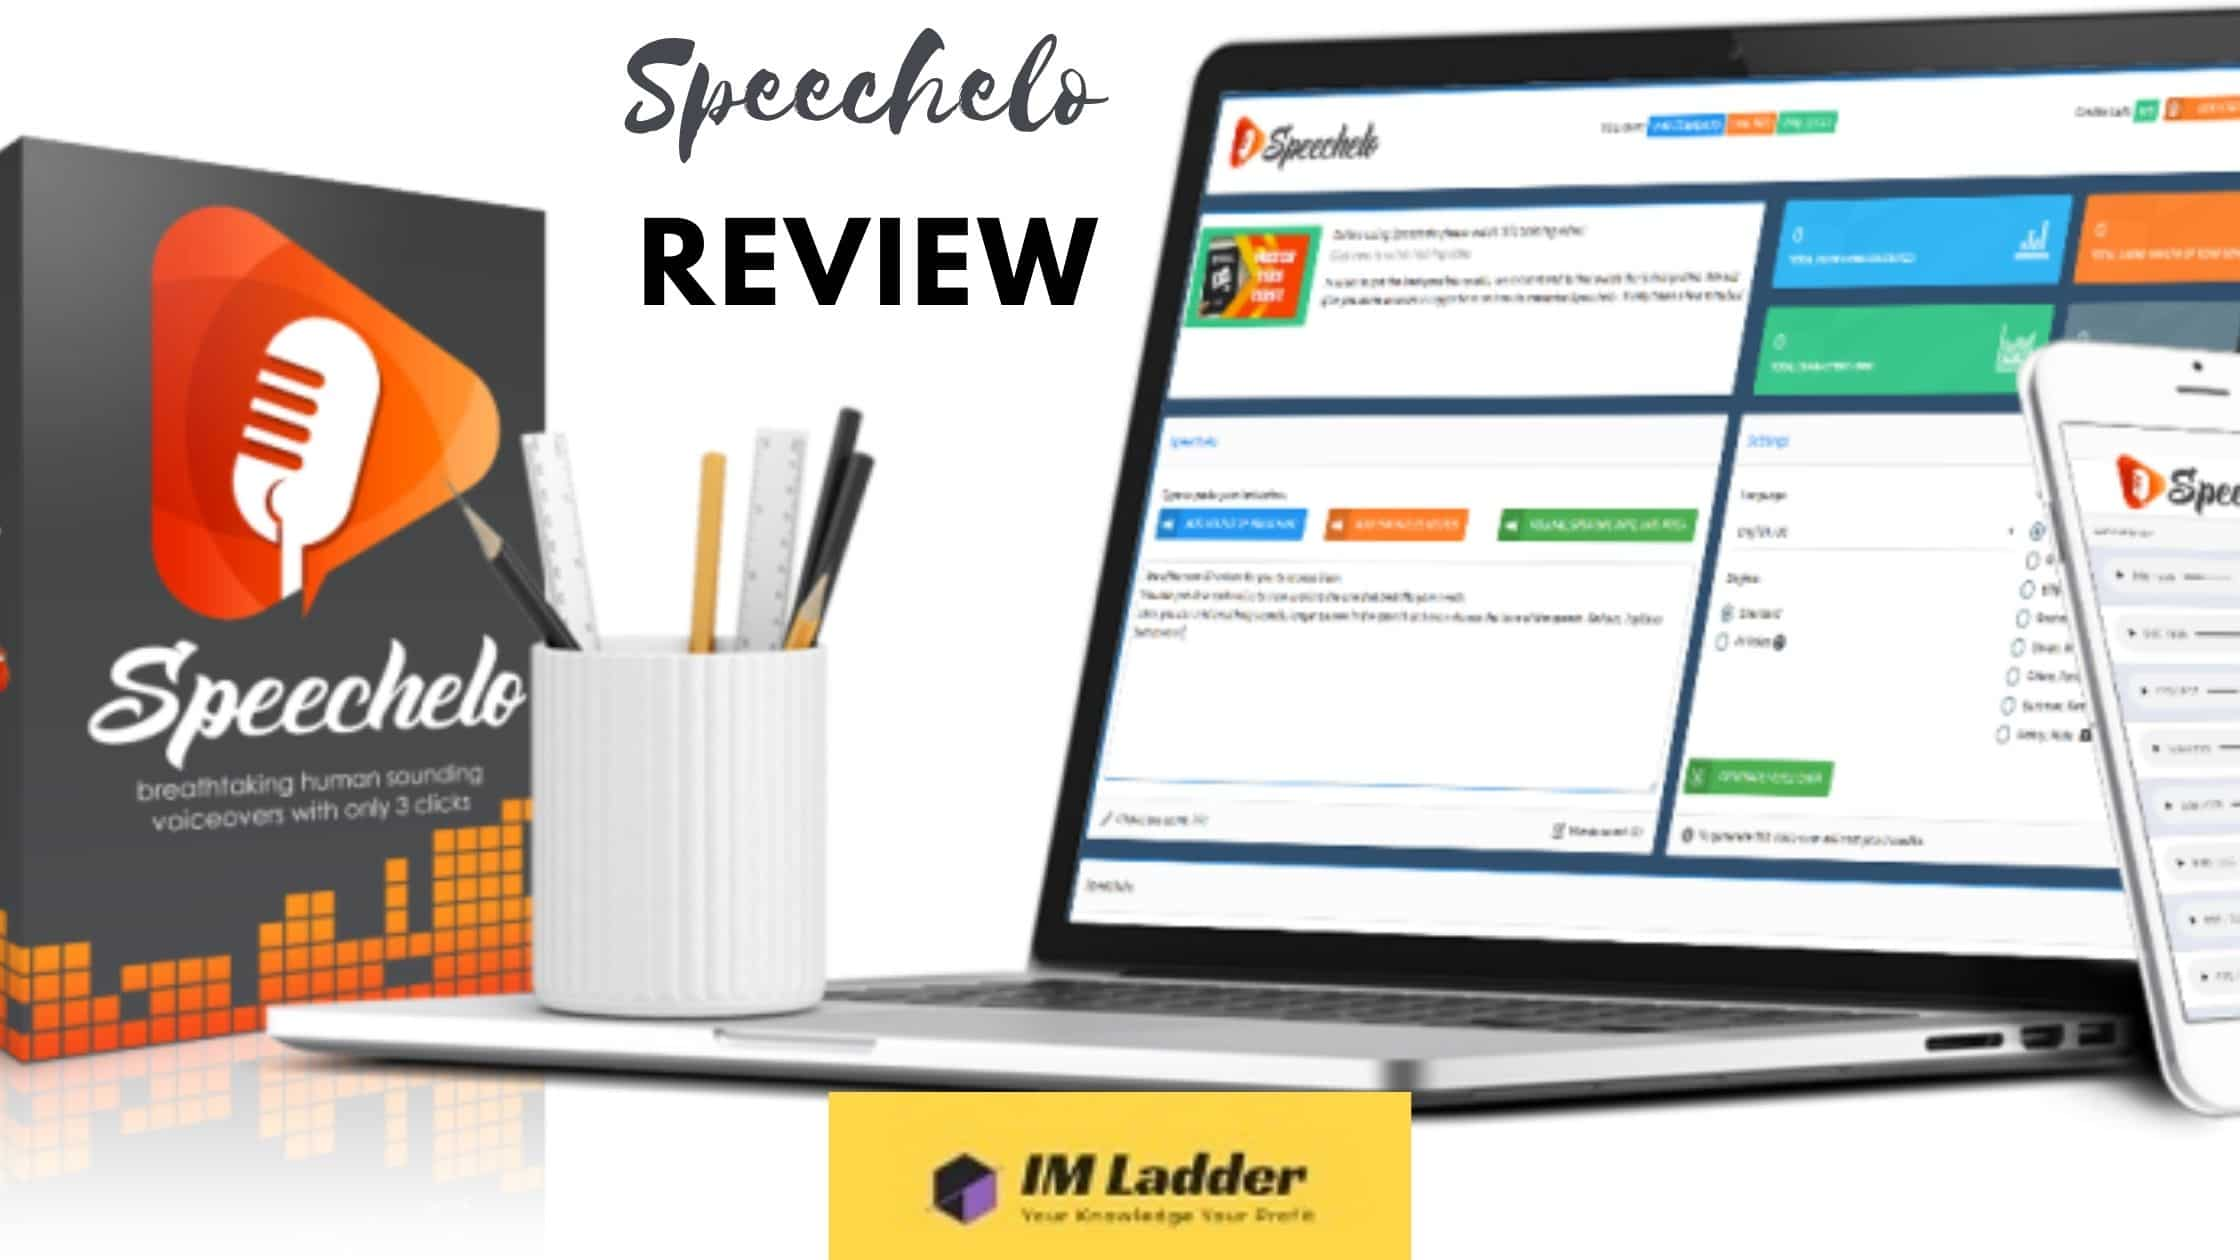 SpeecheloMain - Speechelo Review - Real Human Voices From Text in 60 Seconds!